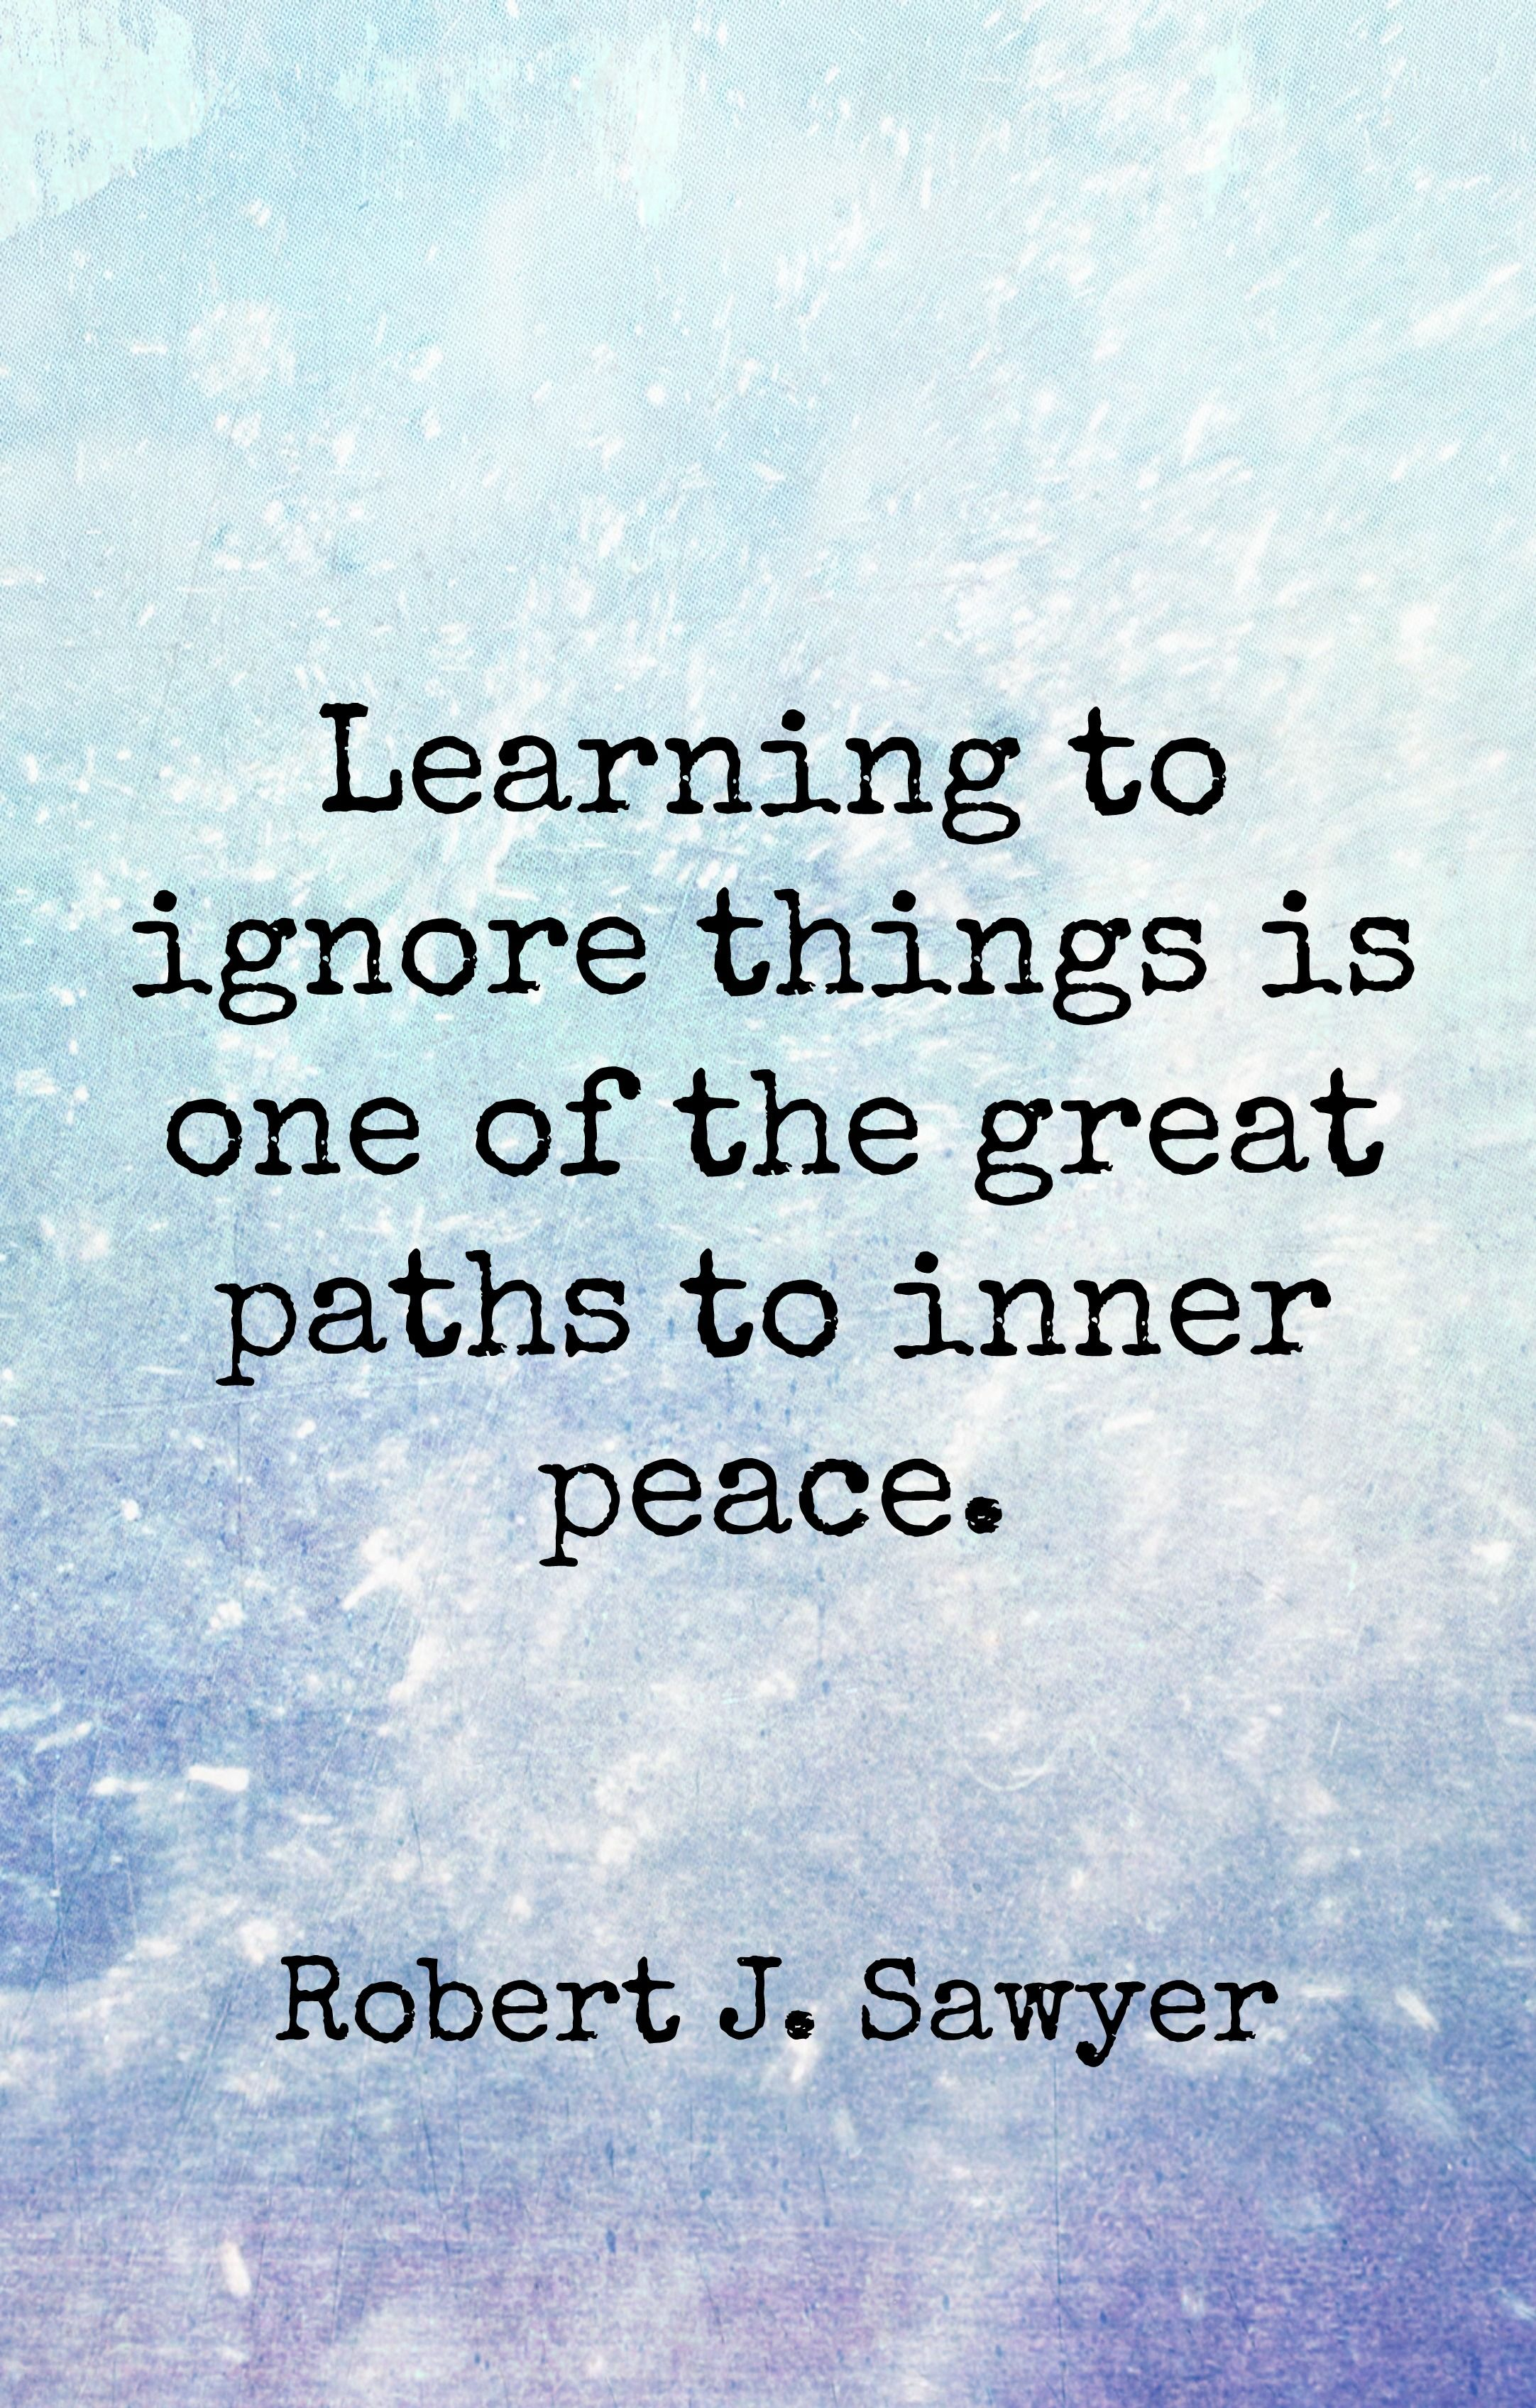 Finding Peace Quotes New Learning To Ignore Things Is One Of The Great Paths To Inner Peace